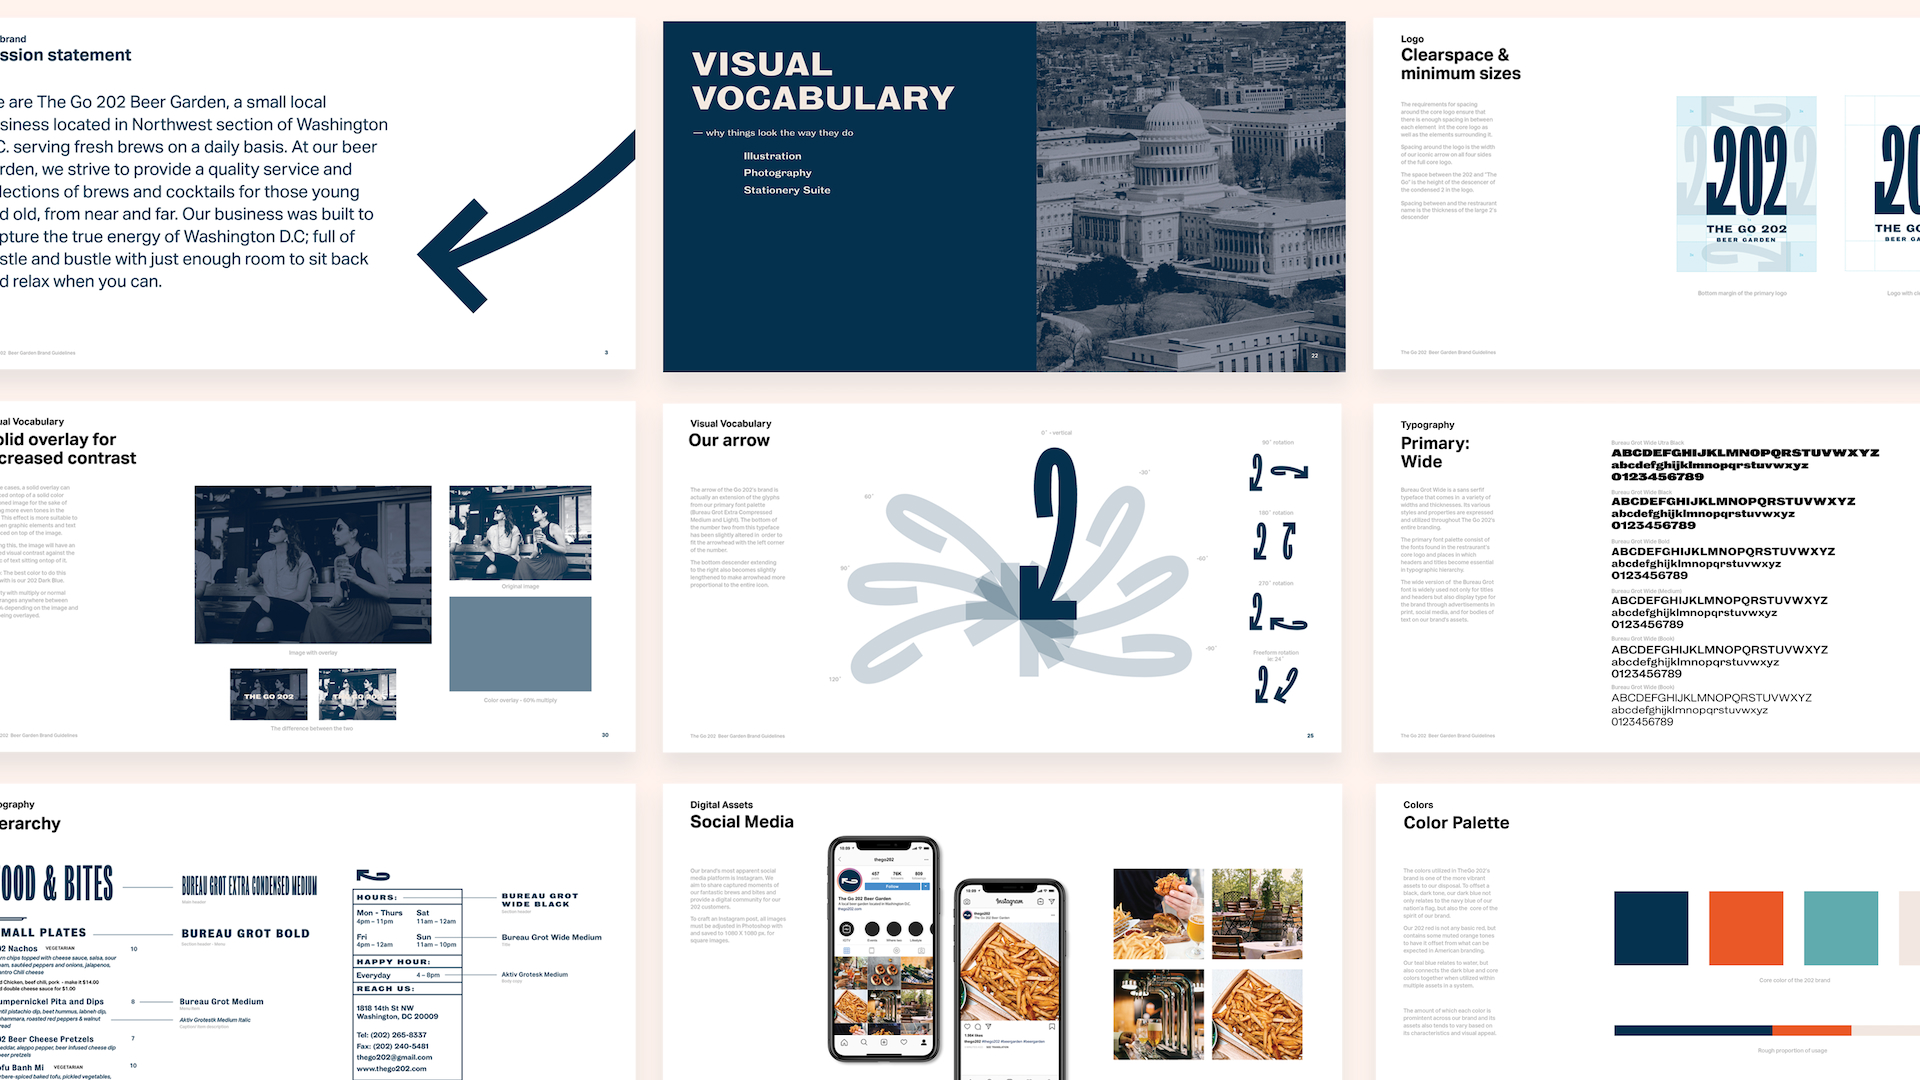 Pages from The Go 202 brand guidelines